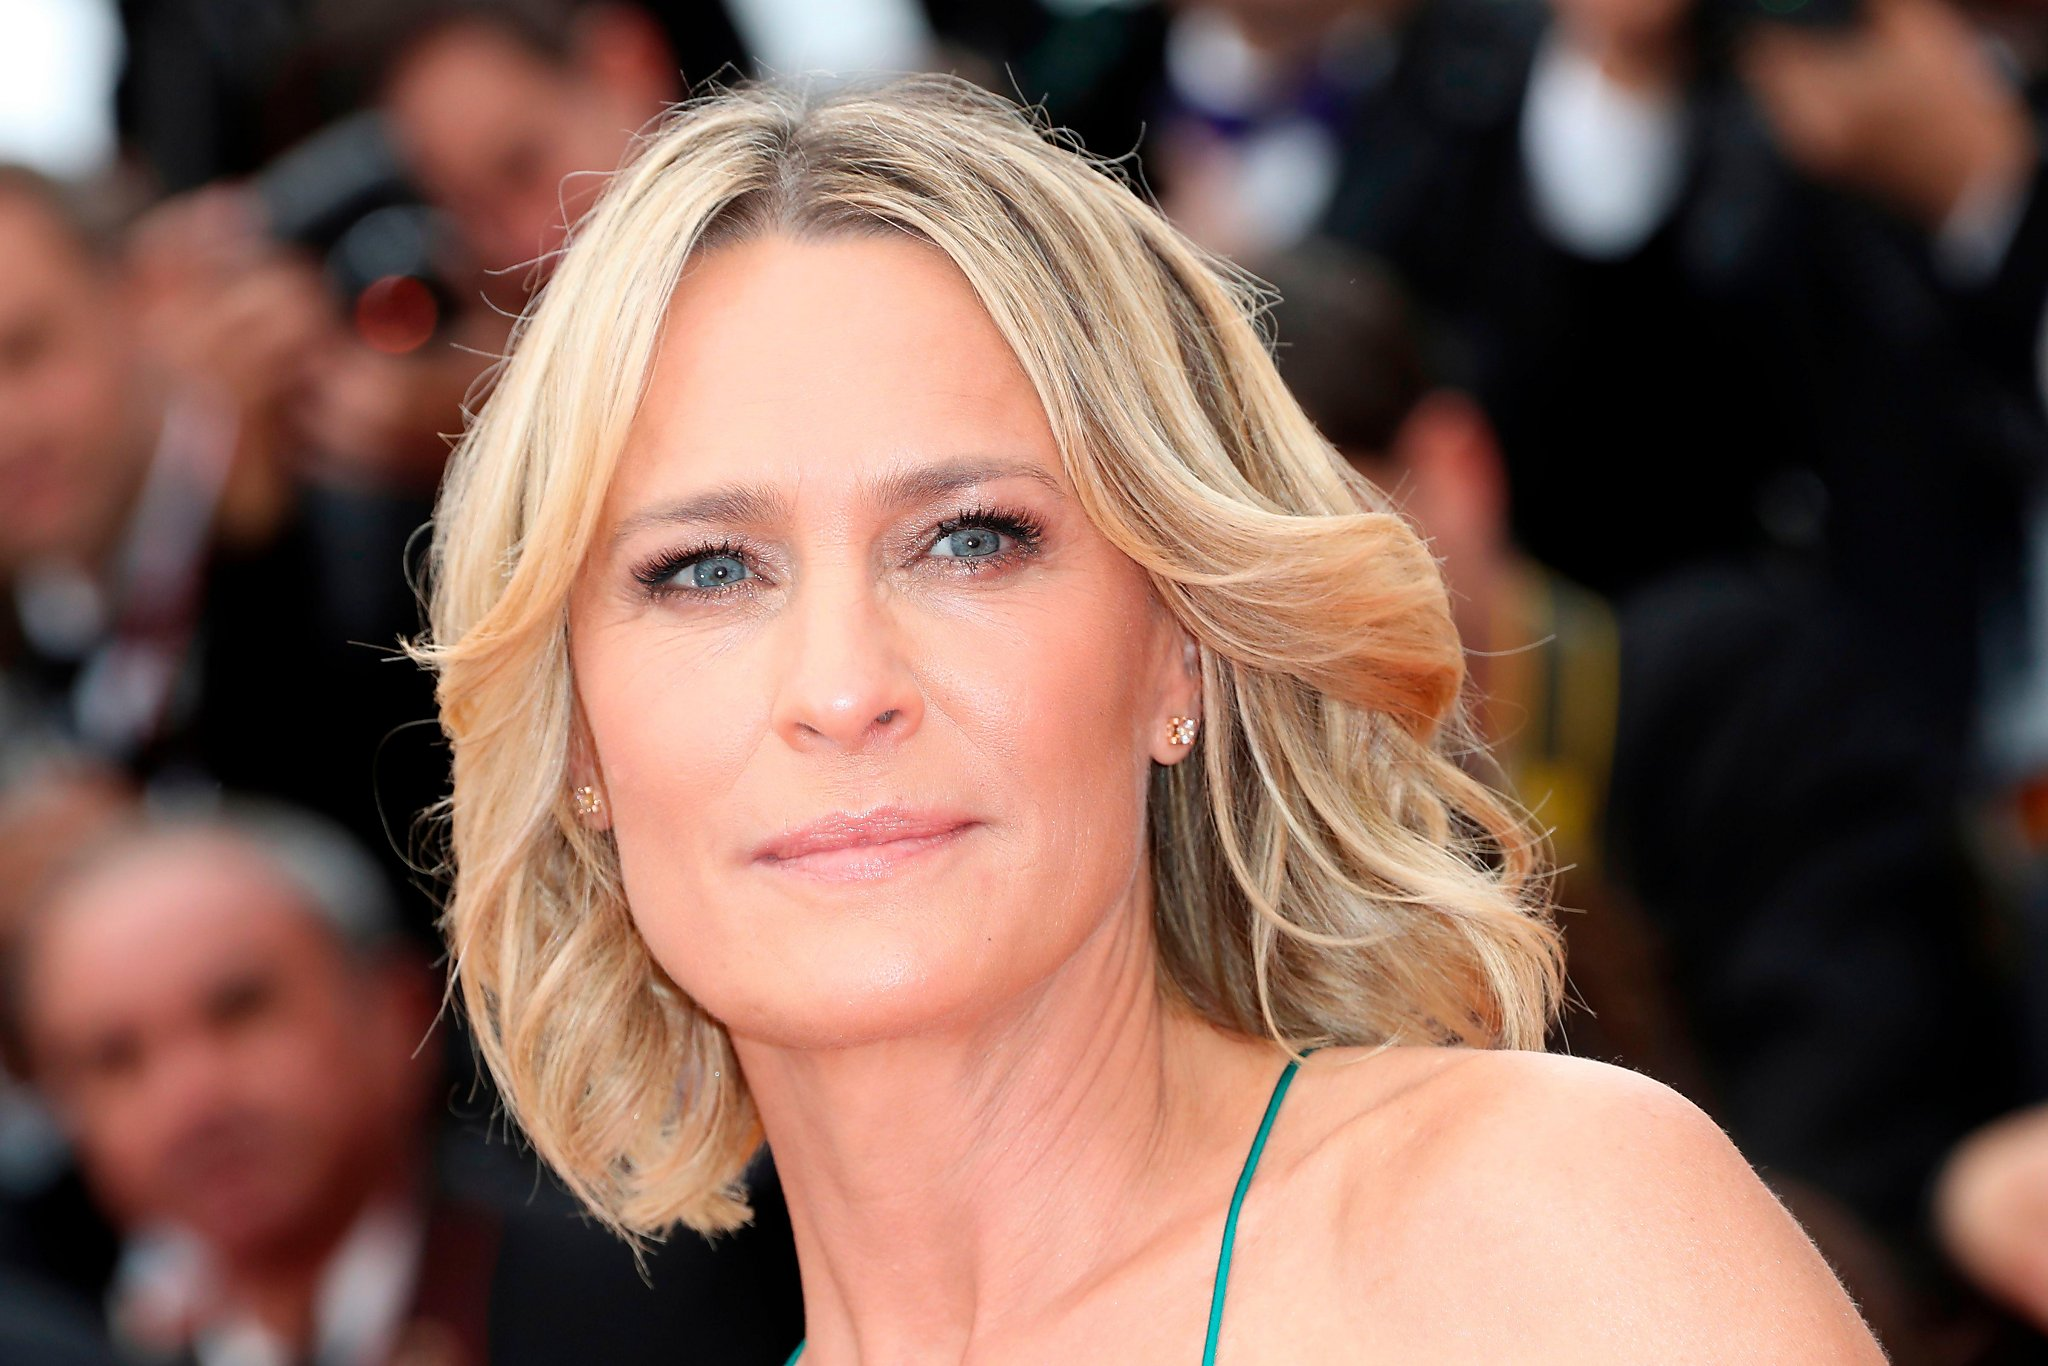 Happy birthday, Robin Wright! The Dallas native is 53, and her star power is still rising